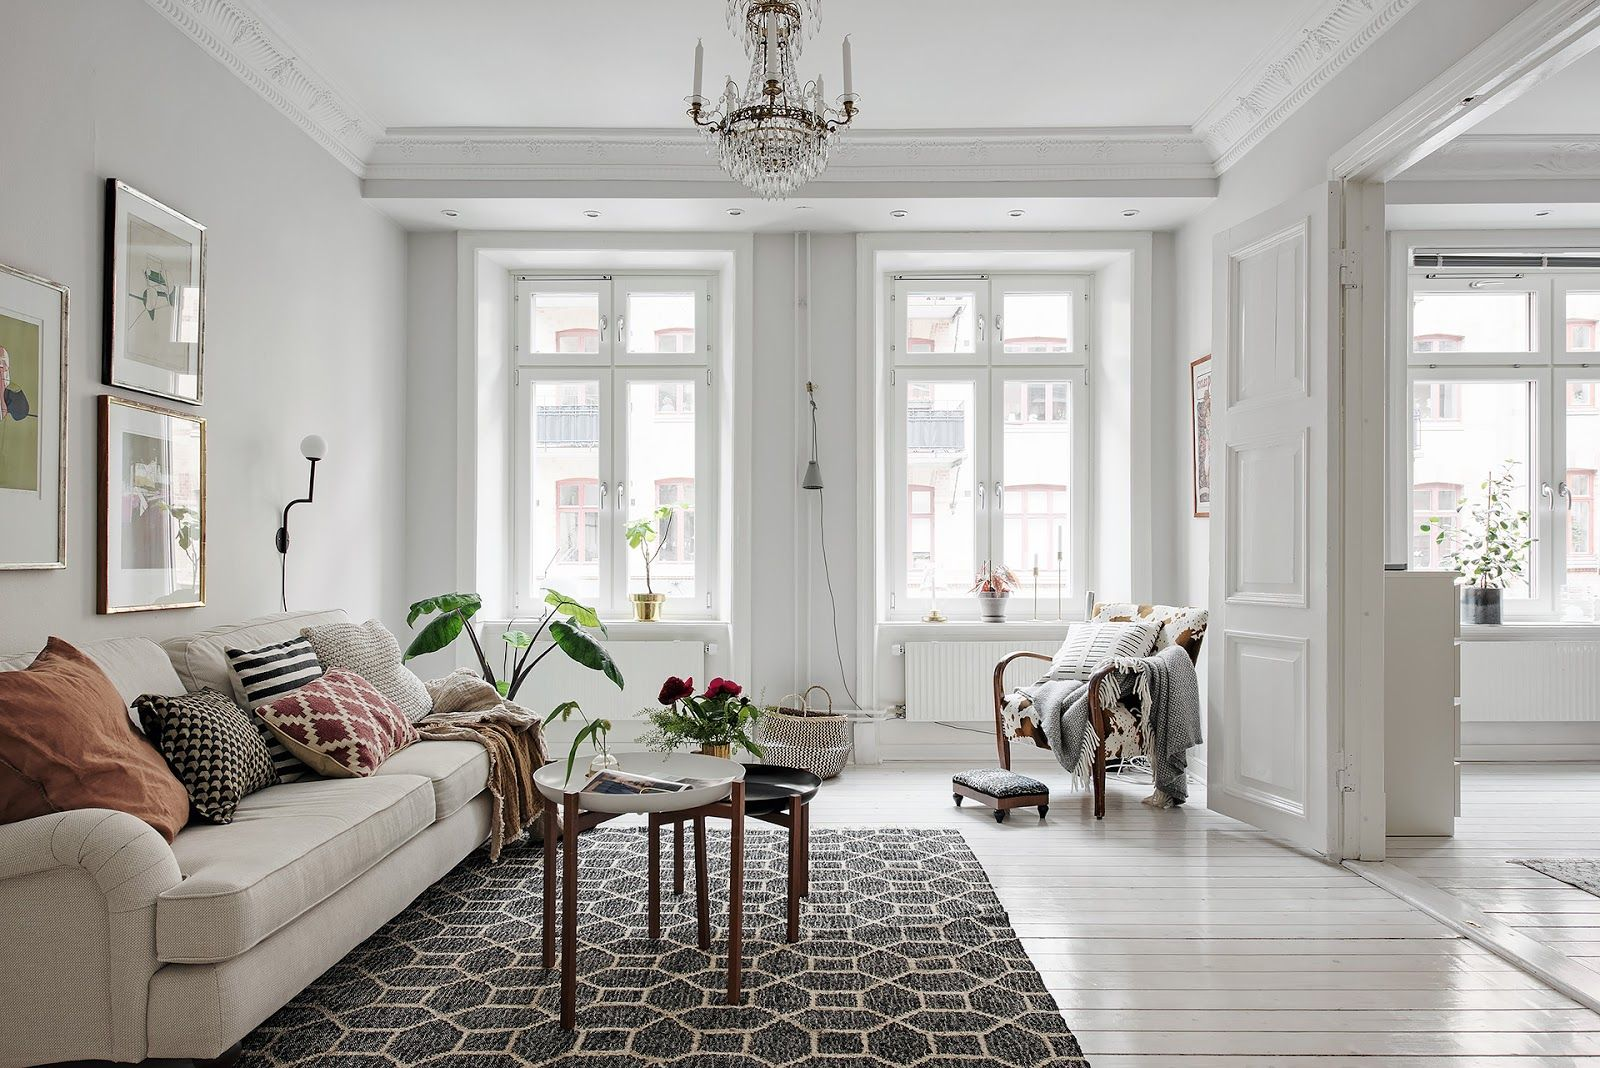 Decorate small spaces so much light in scandinavia home shabby